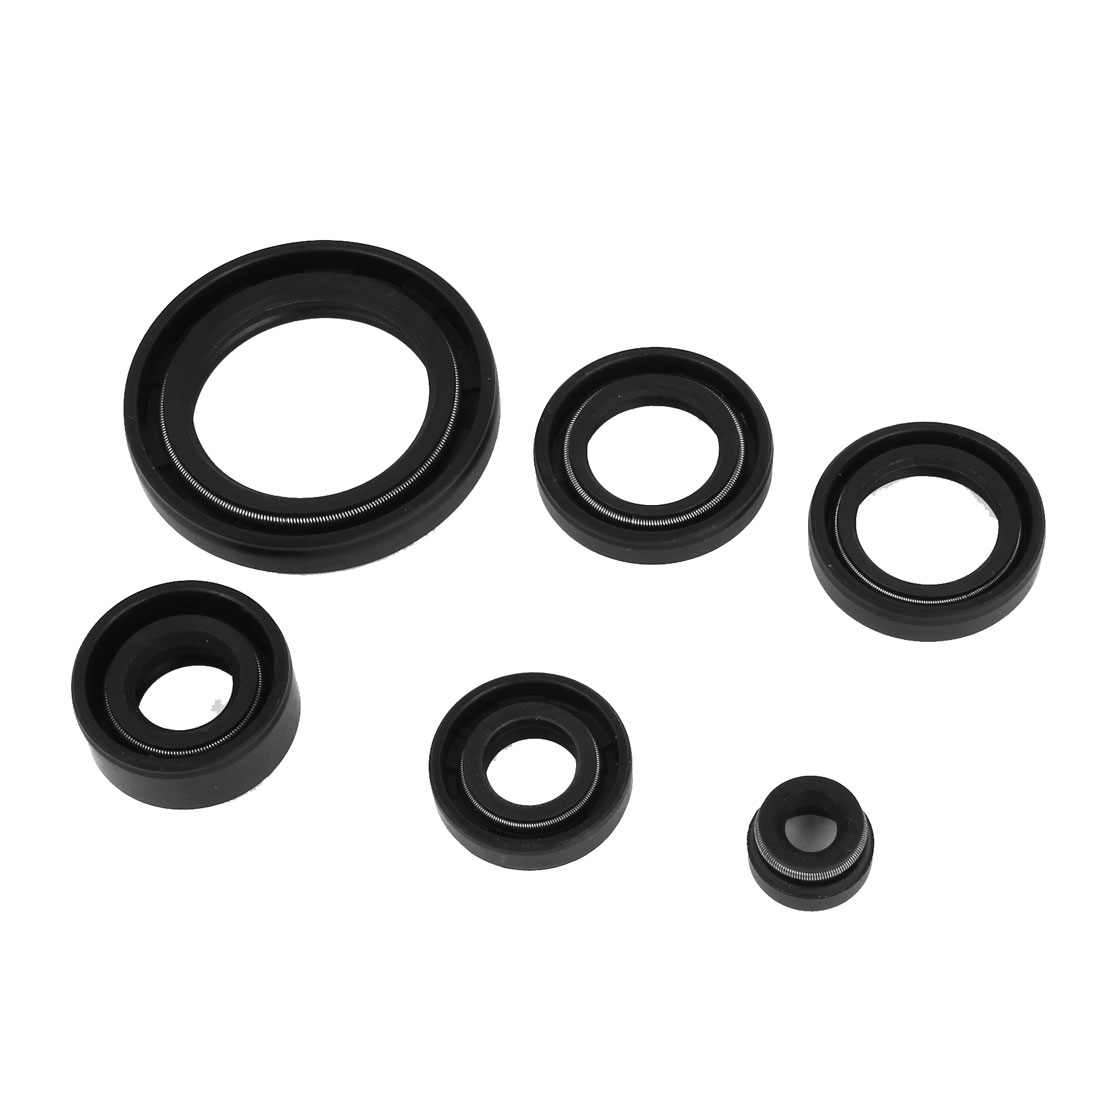 Motorbike 6 in 1 Metric Rotary Shaft TC Oil Seal Set Double Lipped